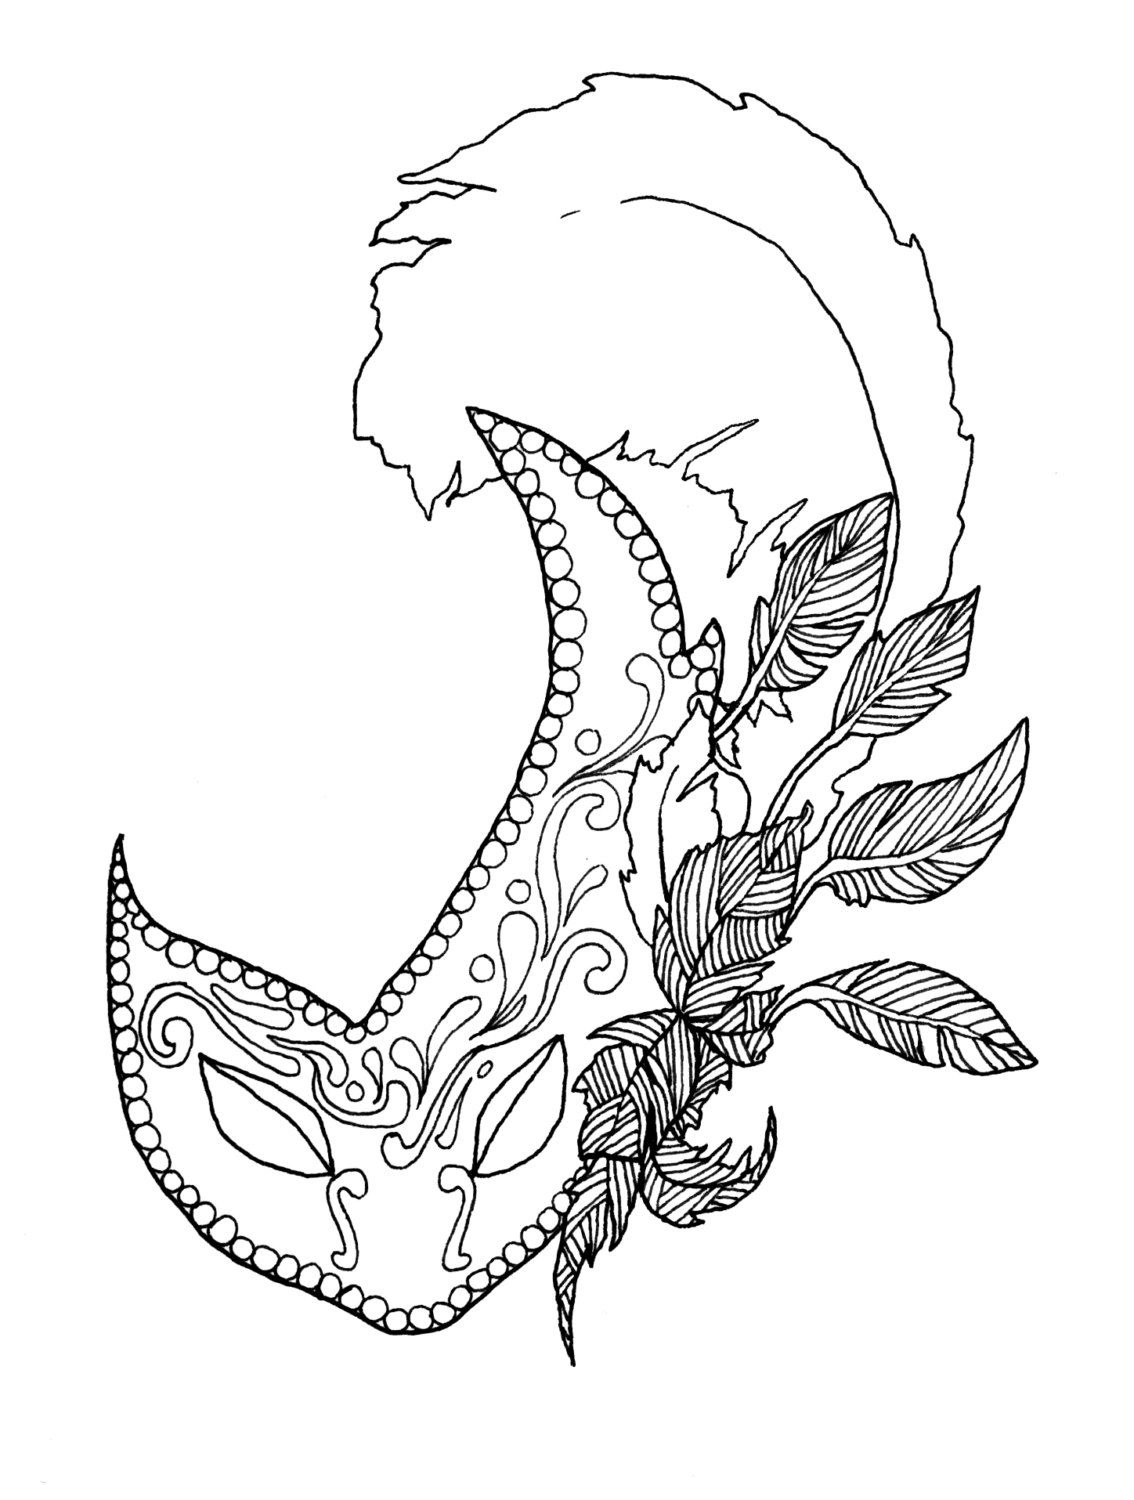 free coloring pages mardi gras : Mardi Gras Adult Coloring Book Digital Download Downloadable Adult Coloring Pages Mardi Gras Mask Theme Masquerade Adult Coloring Pages